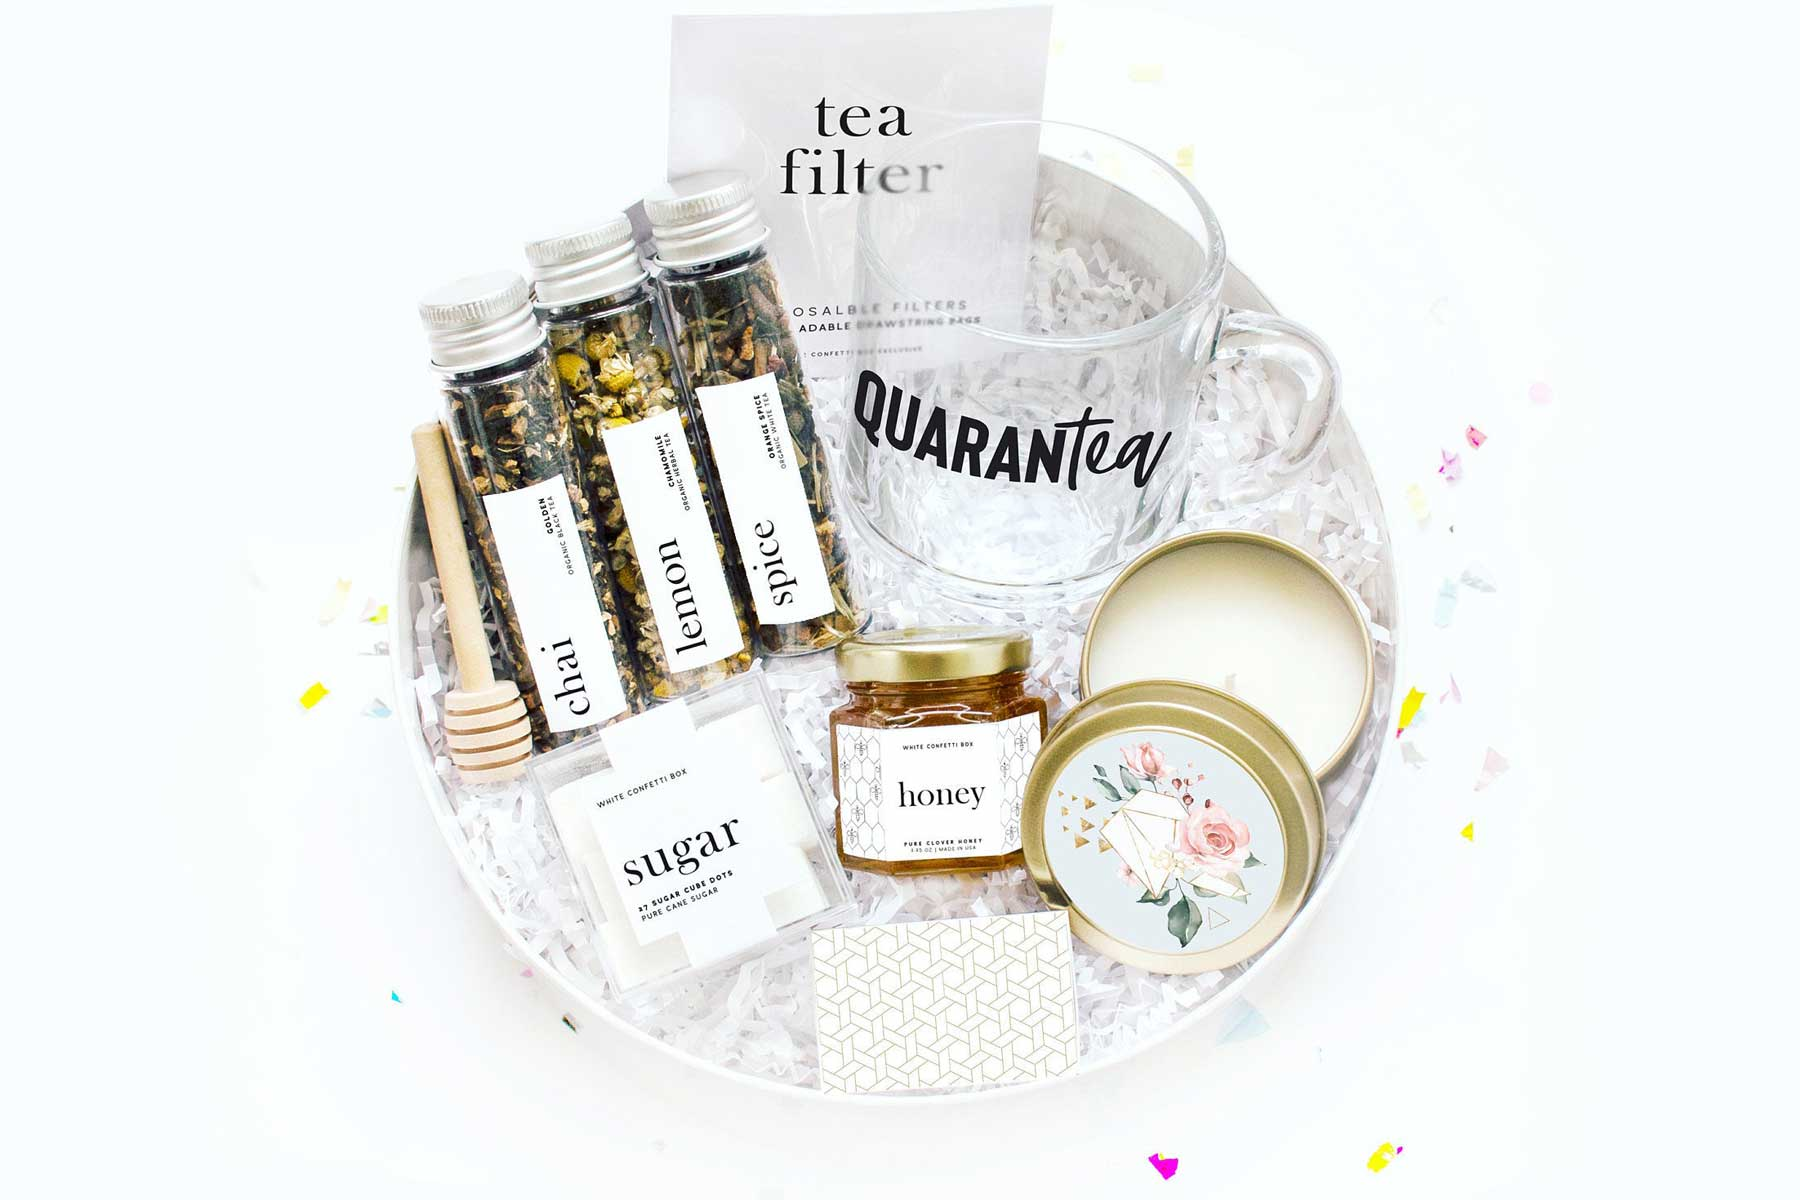 Etsy Quarantea Care Package with mug, honey, and tea